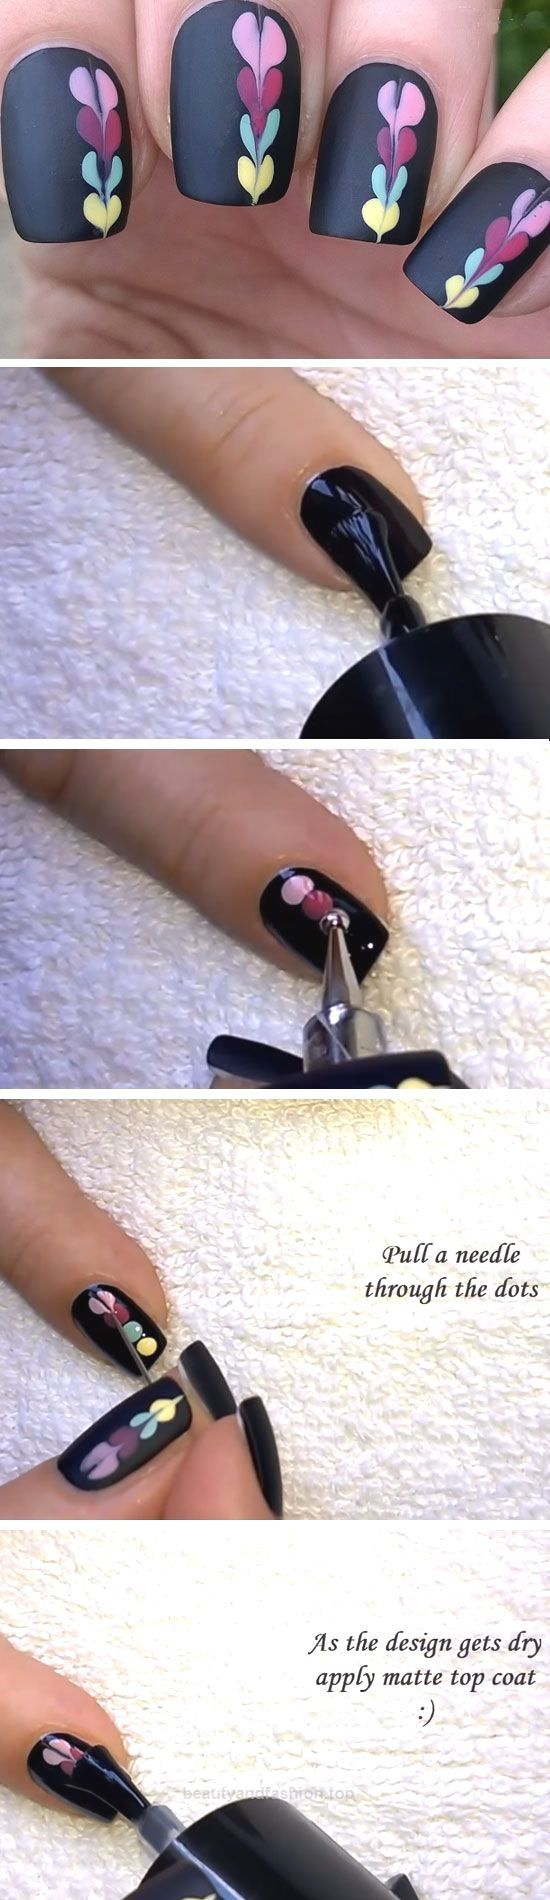 Colorful Hearts   Easy DIY Matte Nails Design Ideas for 2017   Easy DIY Valentin… http://www.beautyandfashion.top/2017/07/26/colorful-hearts-easy-diy-matte-nails-design-ideas-for-2017-easy-diy-valentin/